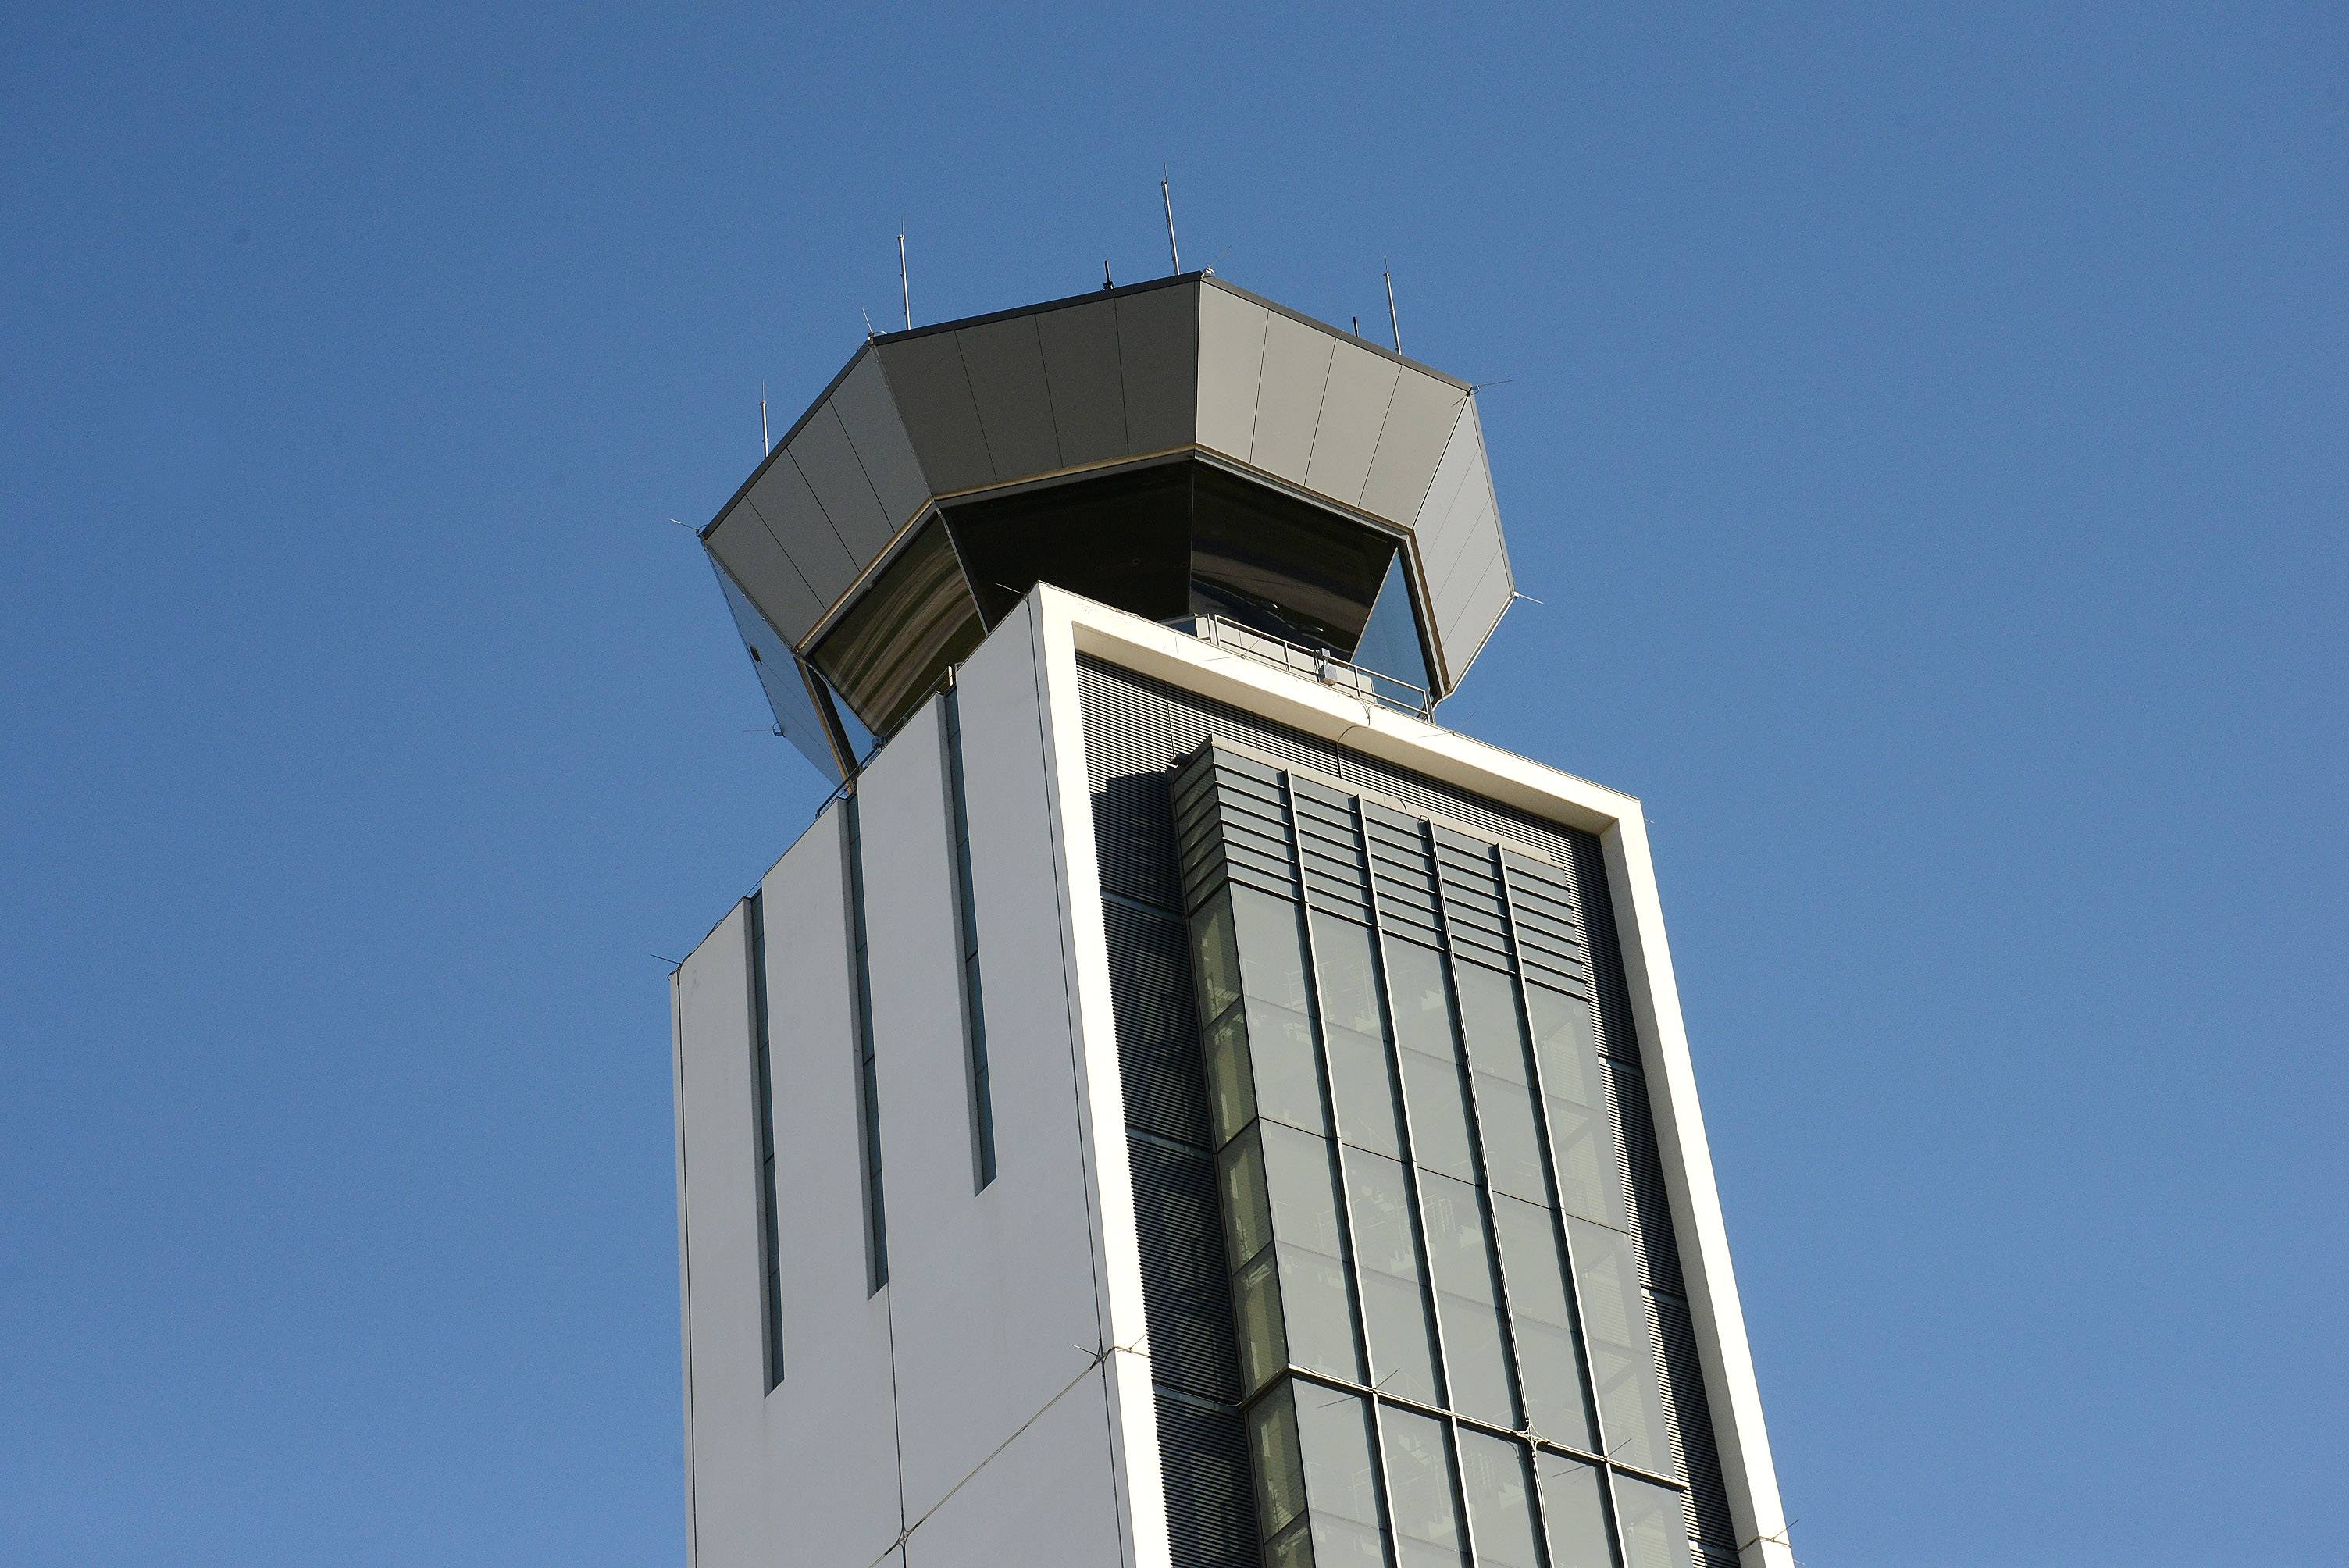 New O'Hare runway, air traffic control tower going live